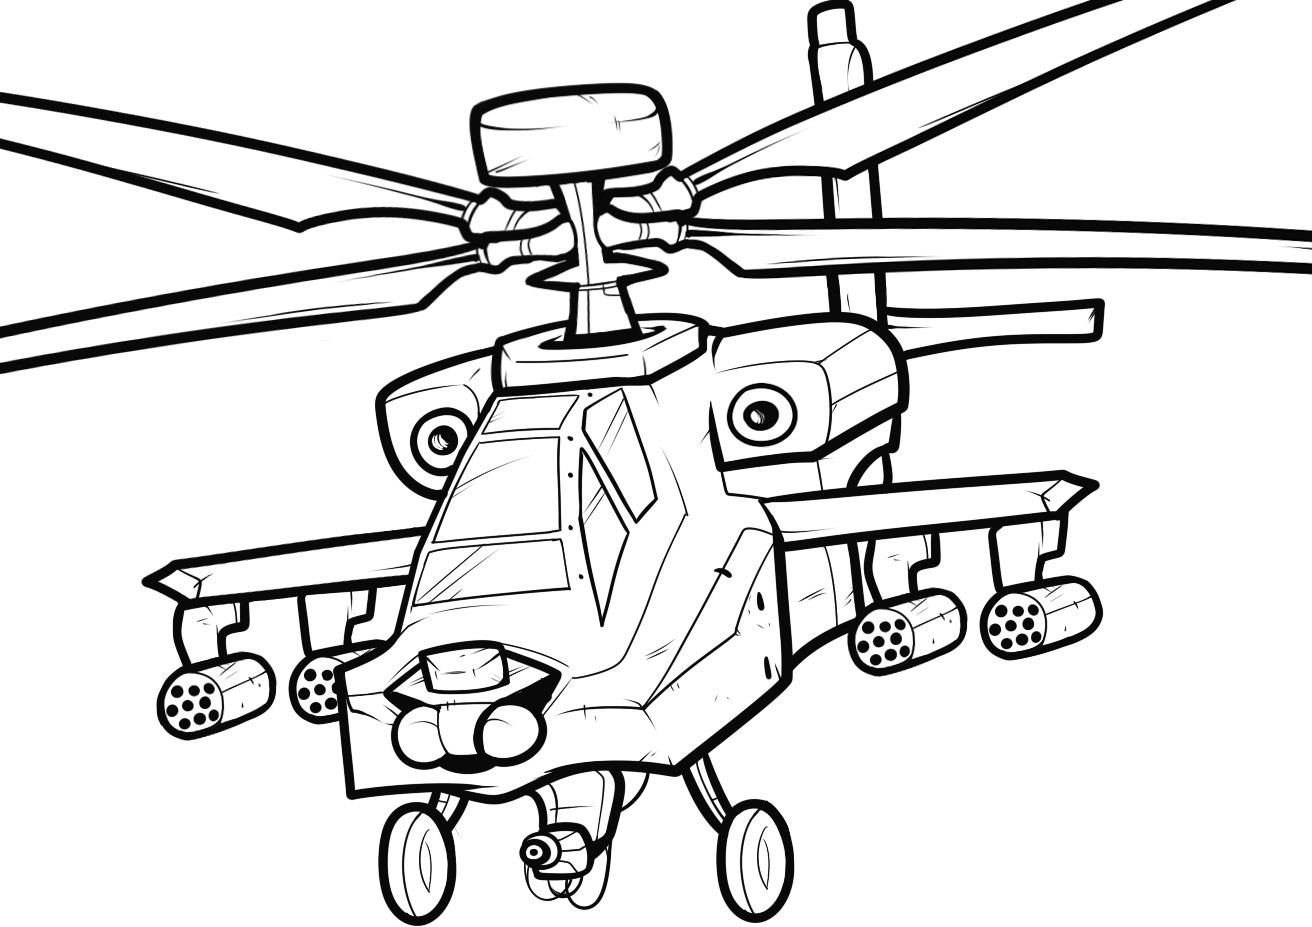 1312x927 Cool Coloring Pages Of Helicopters Printable Helicopter For Kids